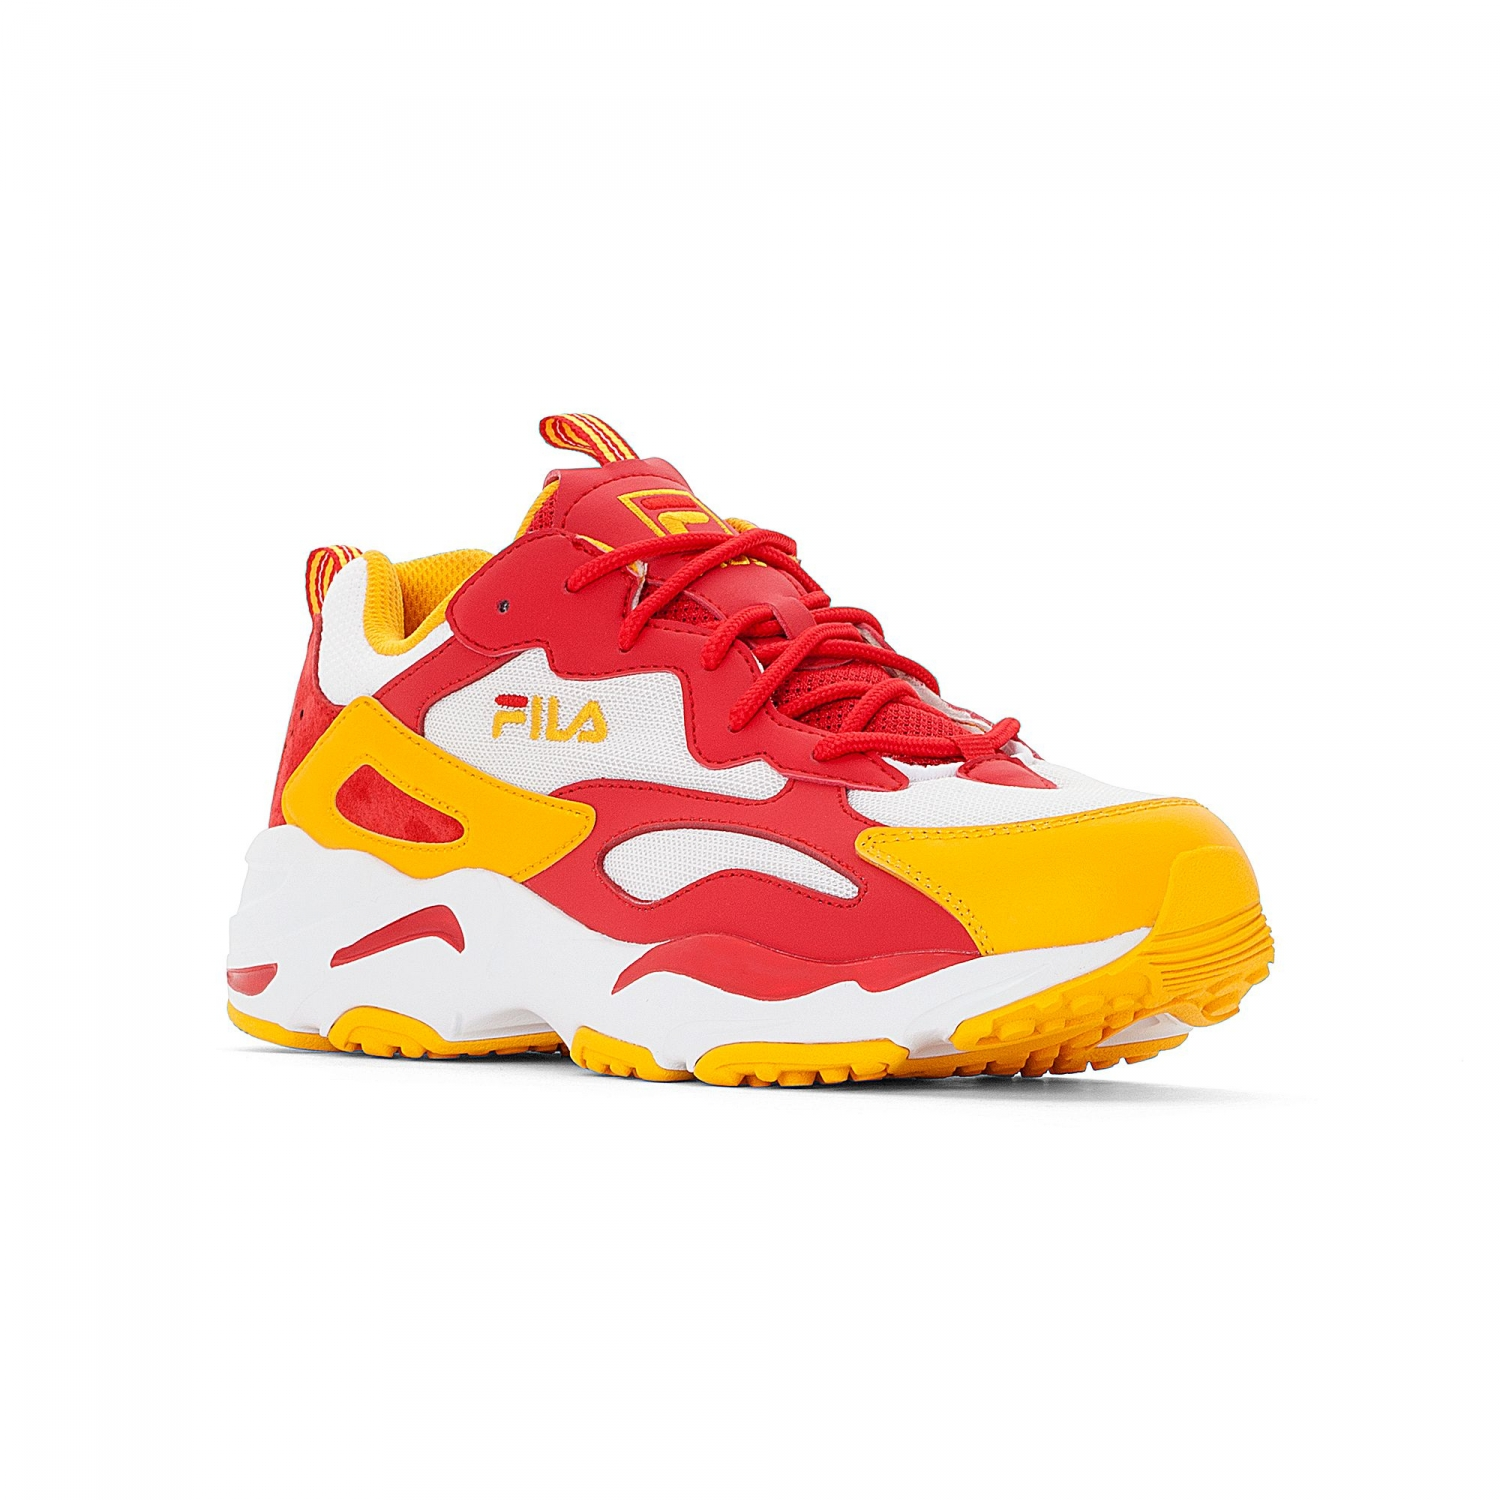 b70eda1ad Fila Ray Tracer Men white-yellow-fire red - white | FILA Official